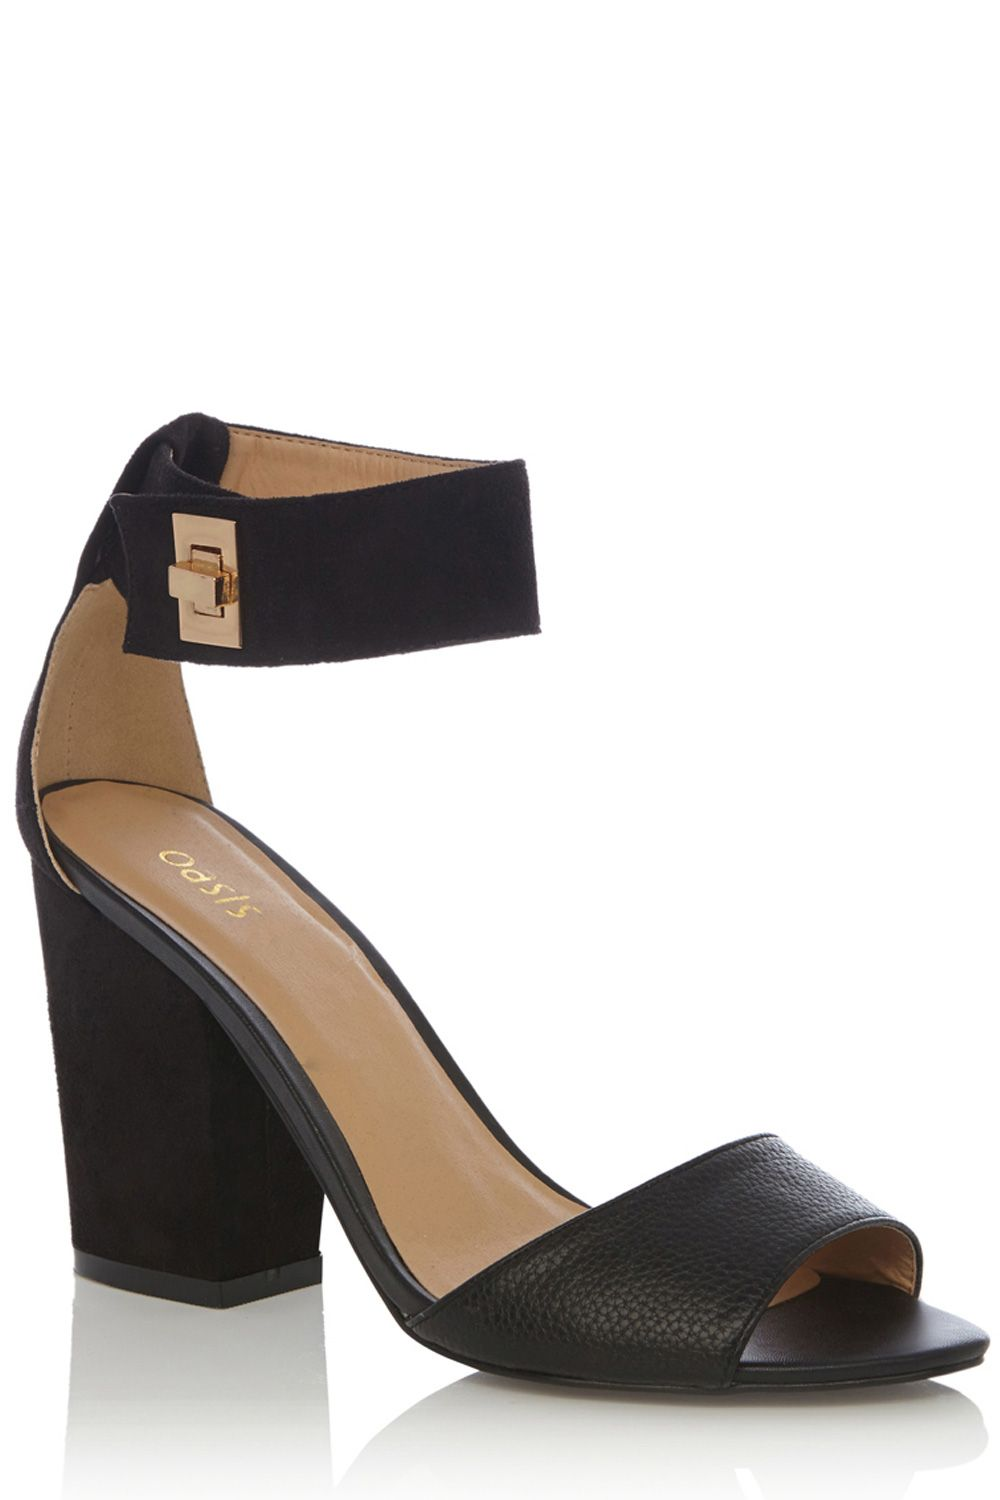 Amanda cuff lock 2 part sandal